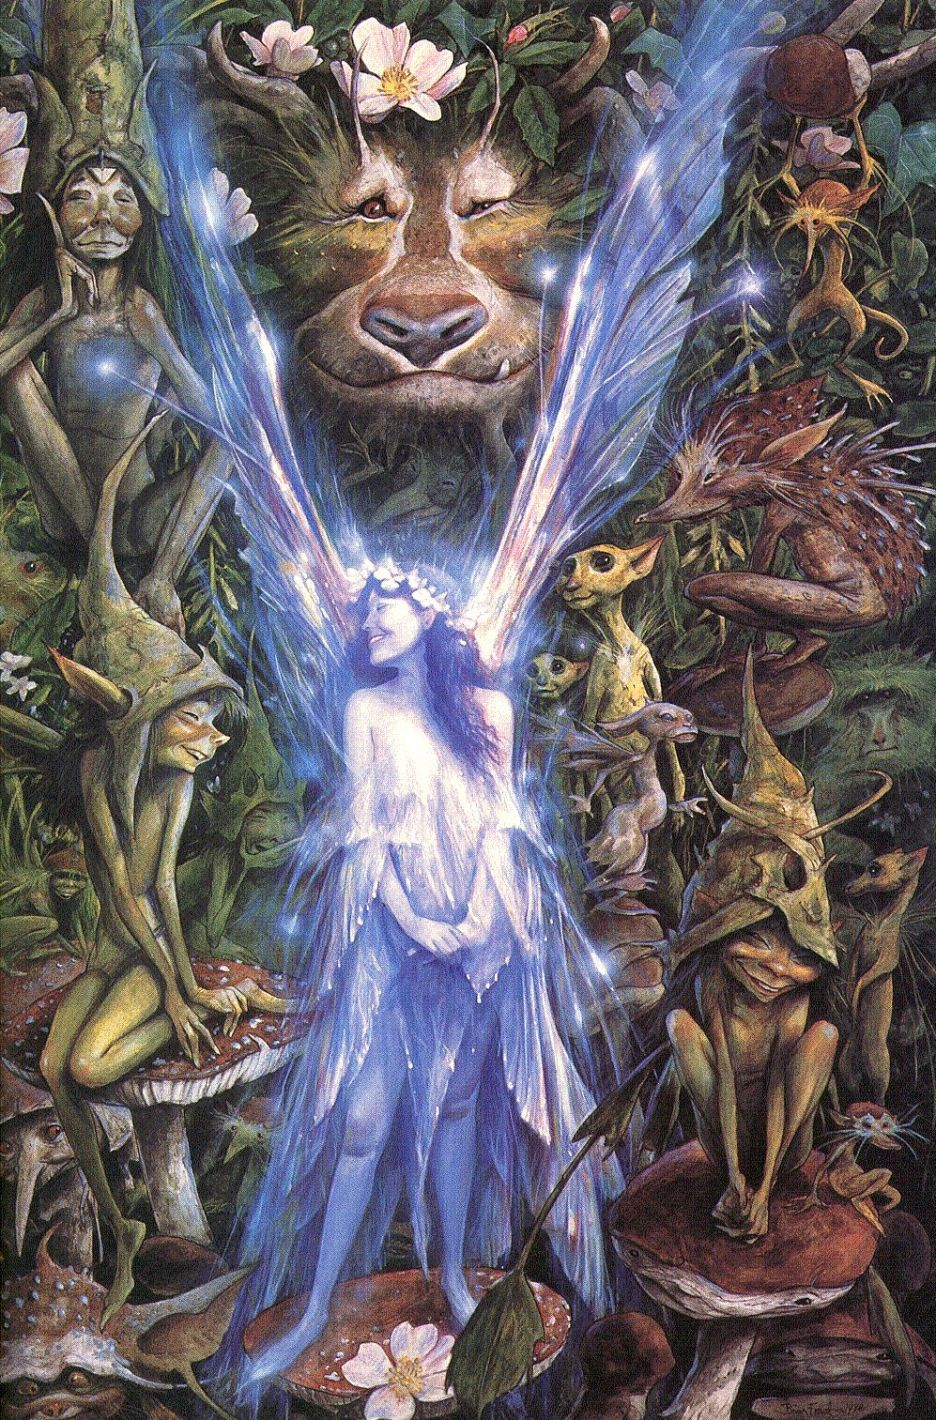 images Brian Froud